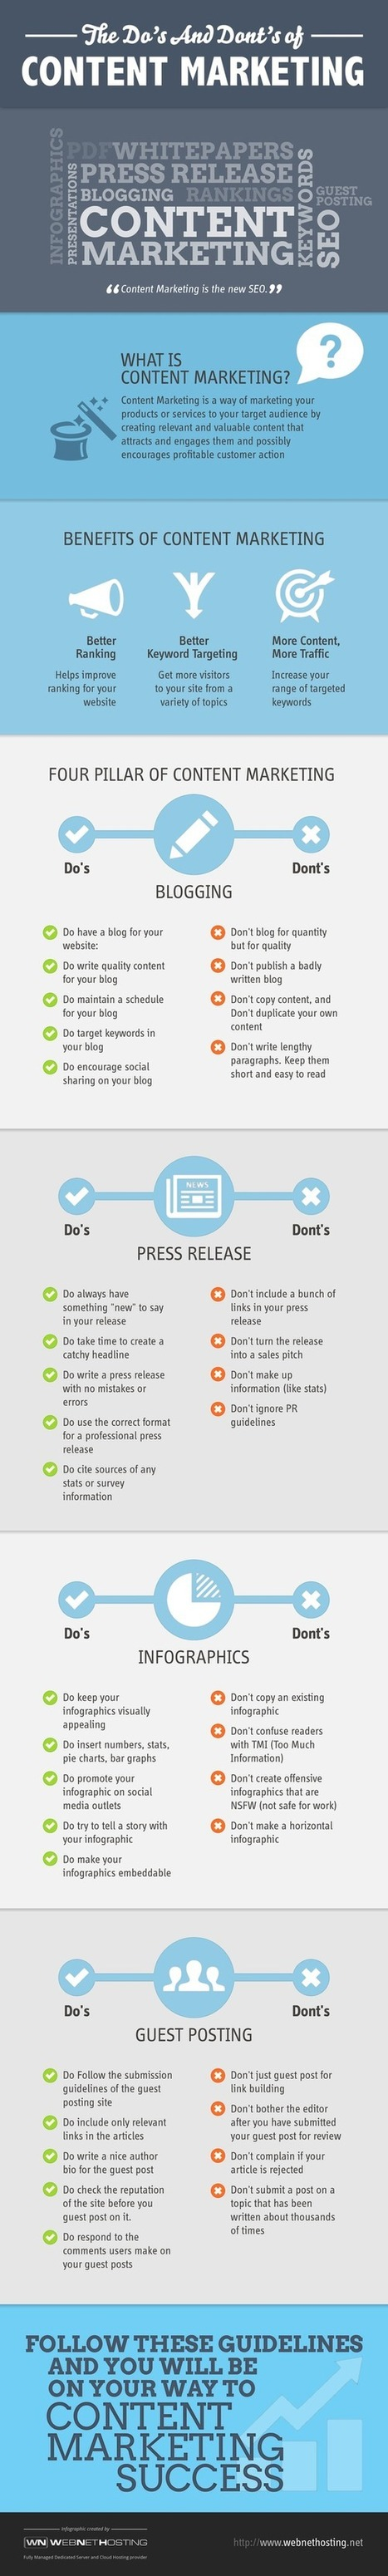 The Do's and Dont's of Content Marketing - Infographic | Personal Branding and Professional networks | Scoop.it